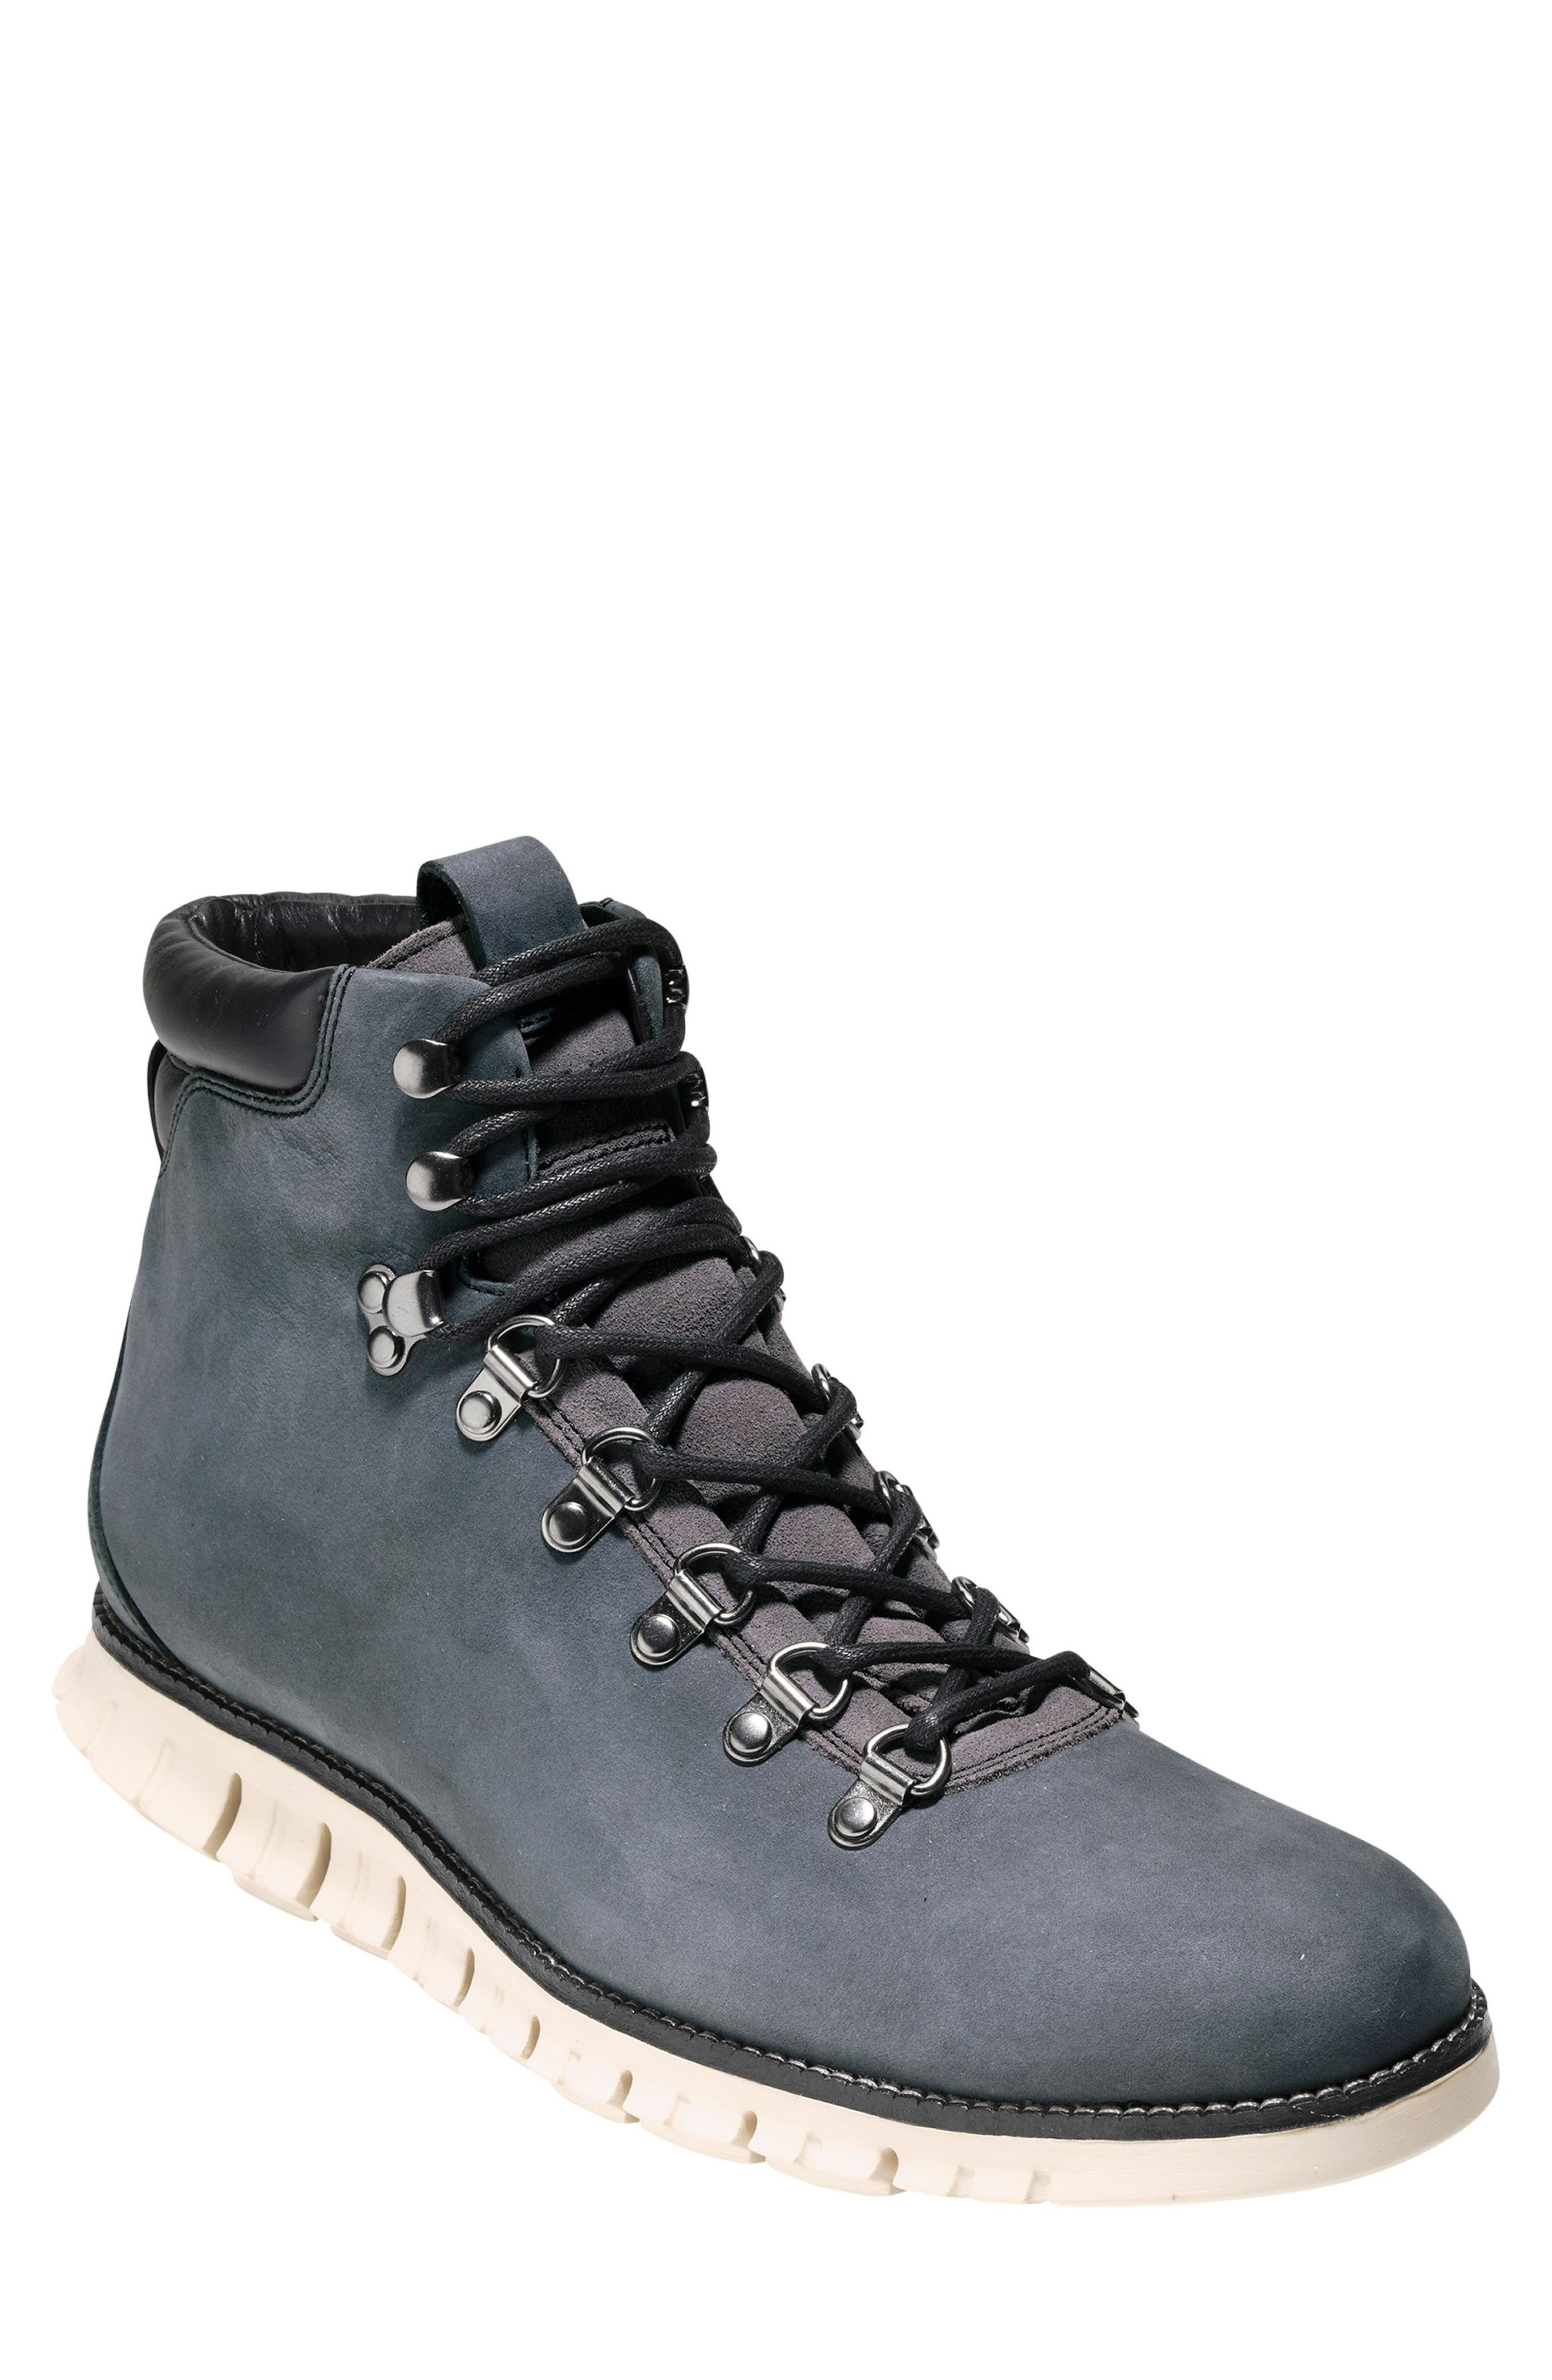 ZeroGrand Water Resistant Hiker Boot,                         Main,                         color, GREY/ IVY LEATHER